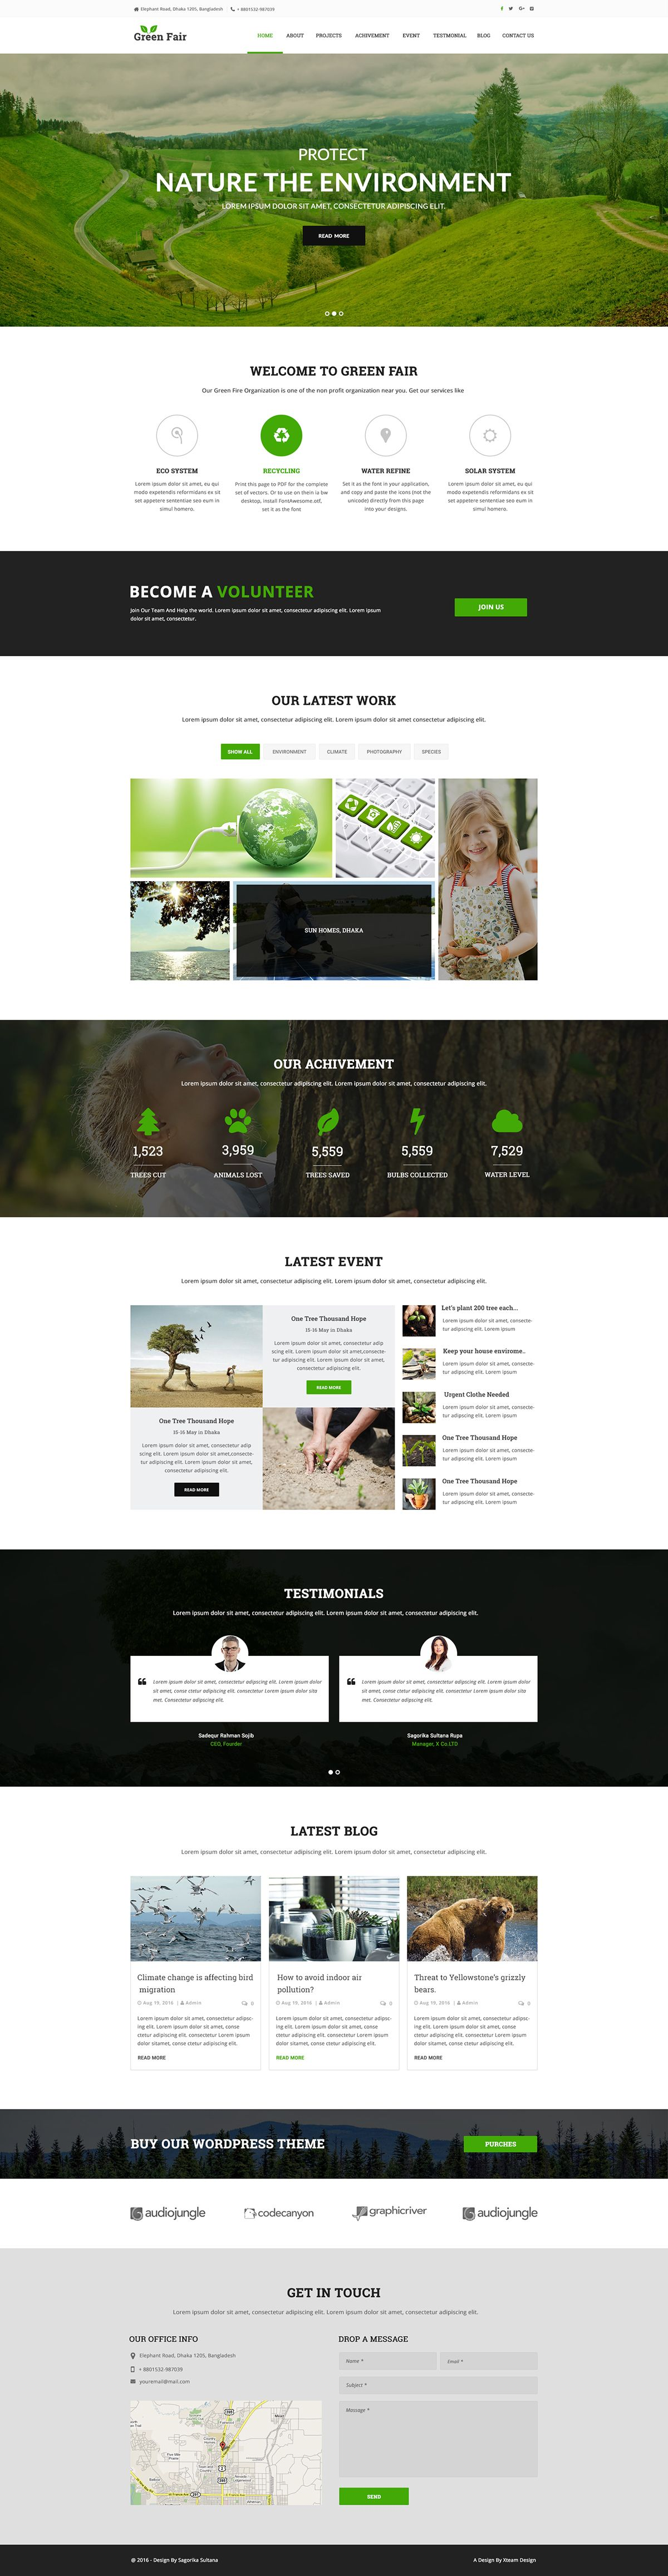 Green Fair Free EcoNatural PSD Template On Behance Site - Web home page template